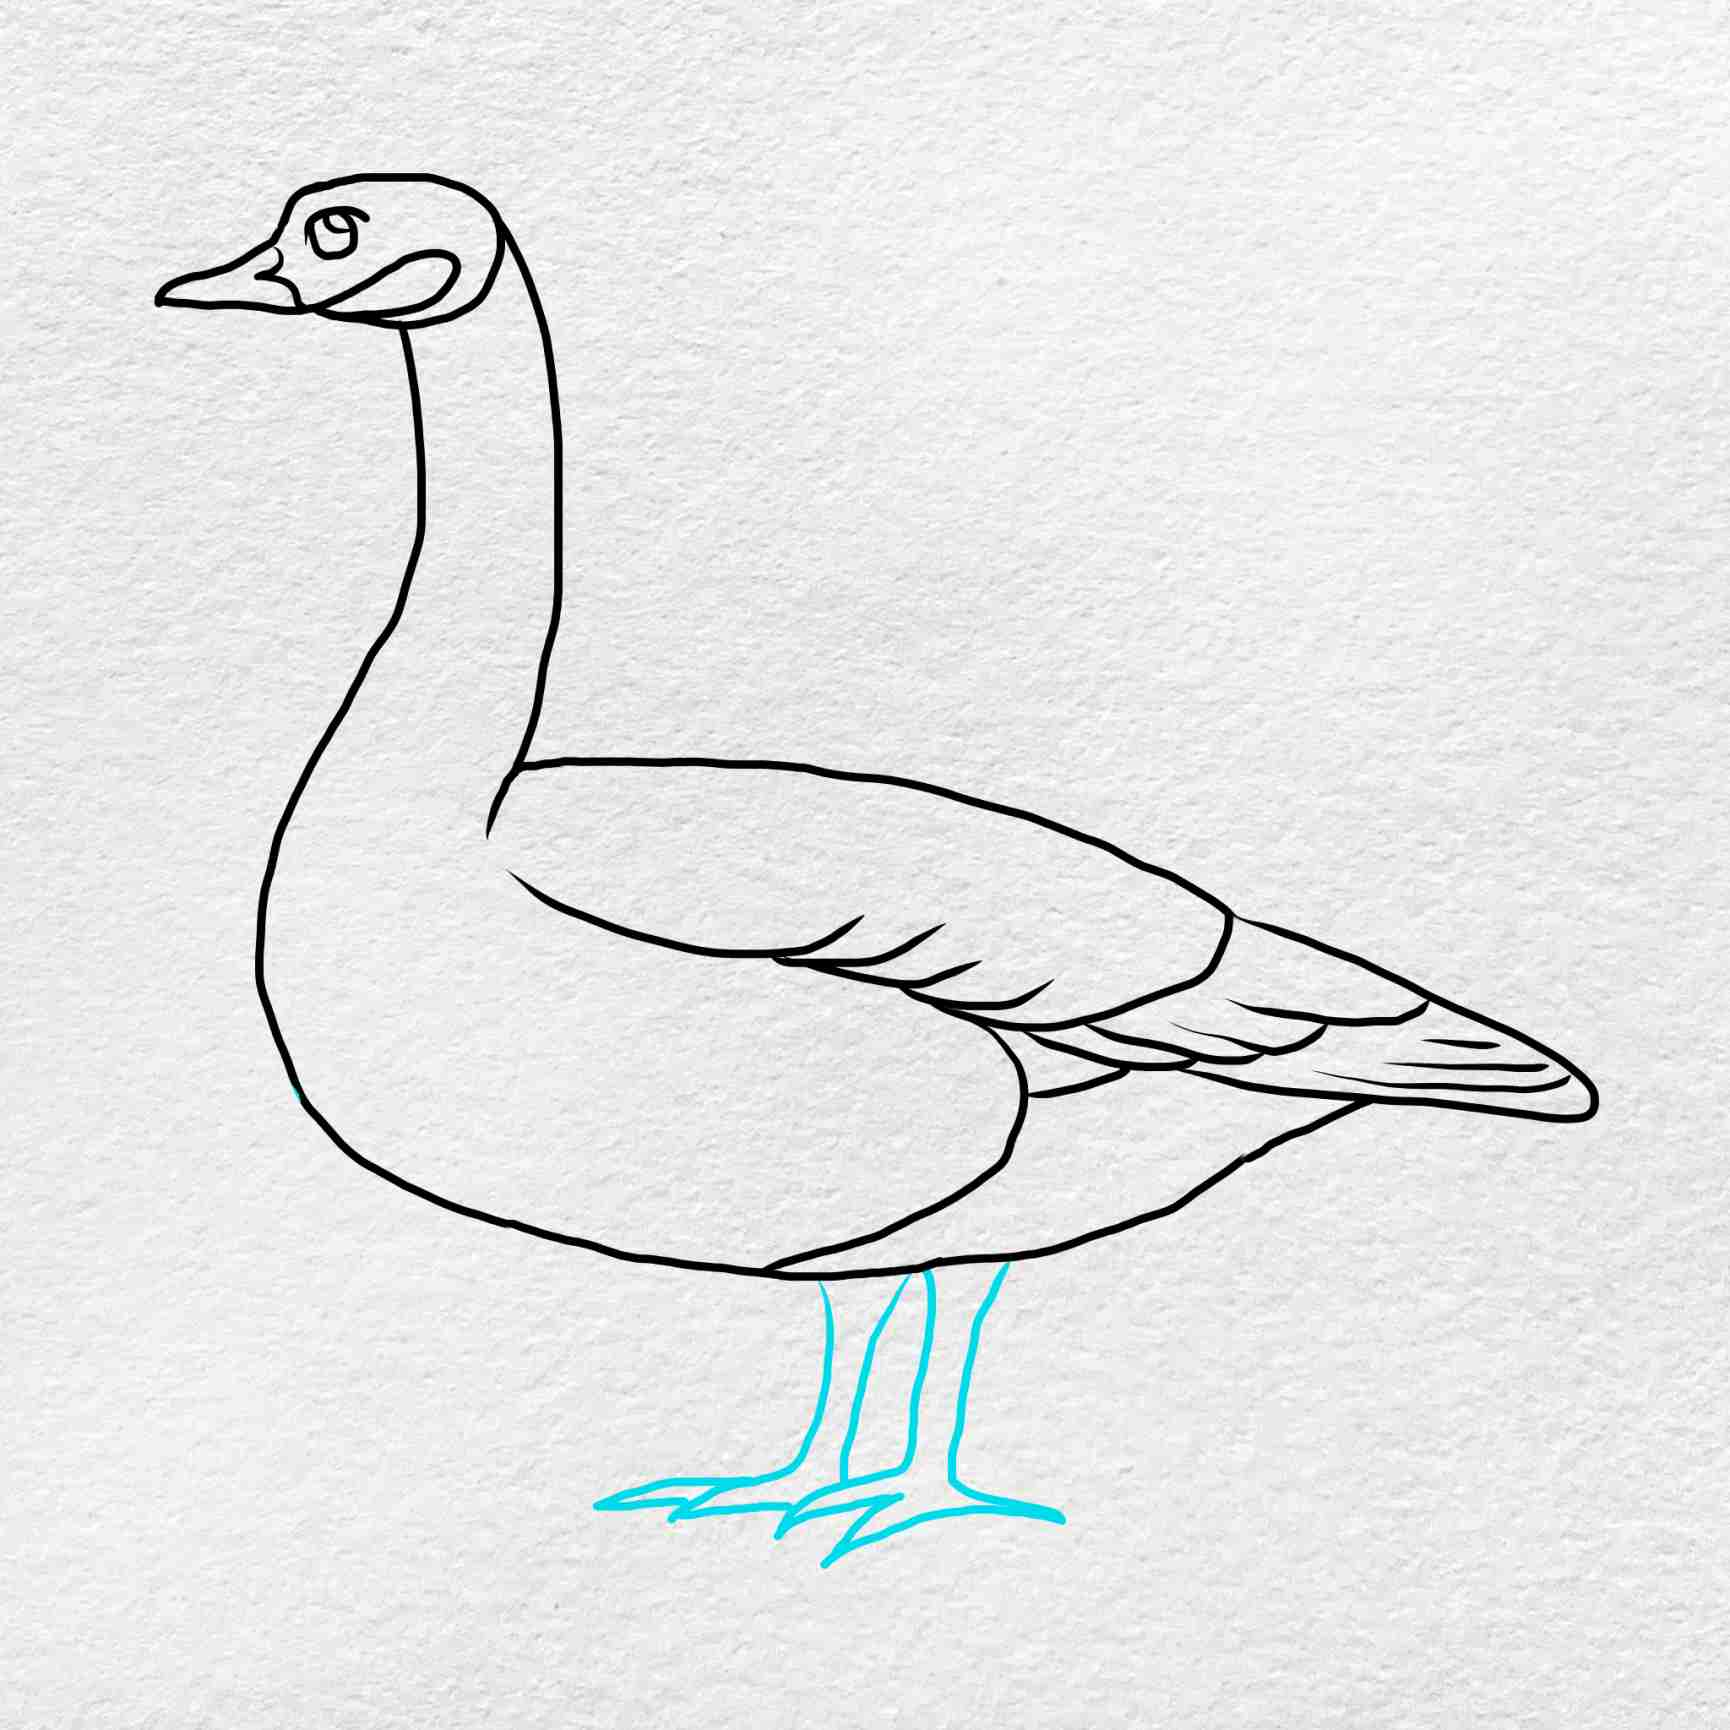 Canada Goose Drawing: Step 5